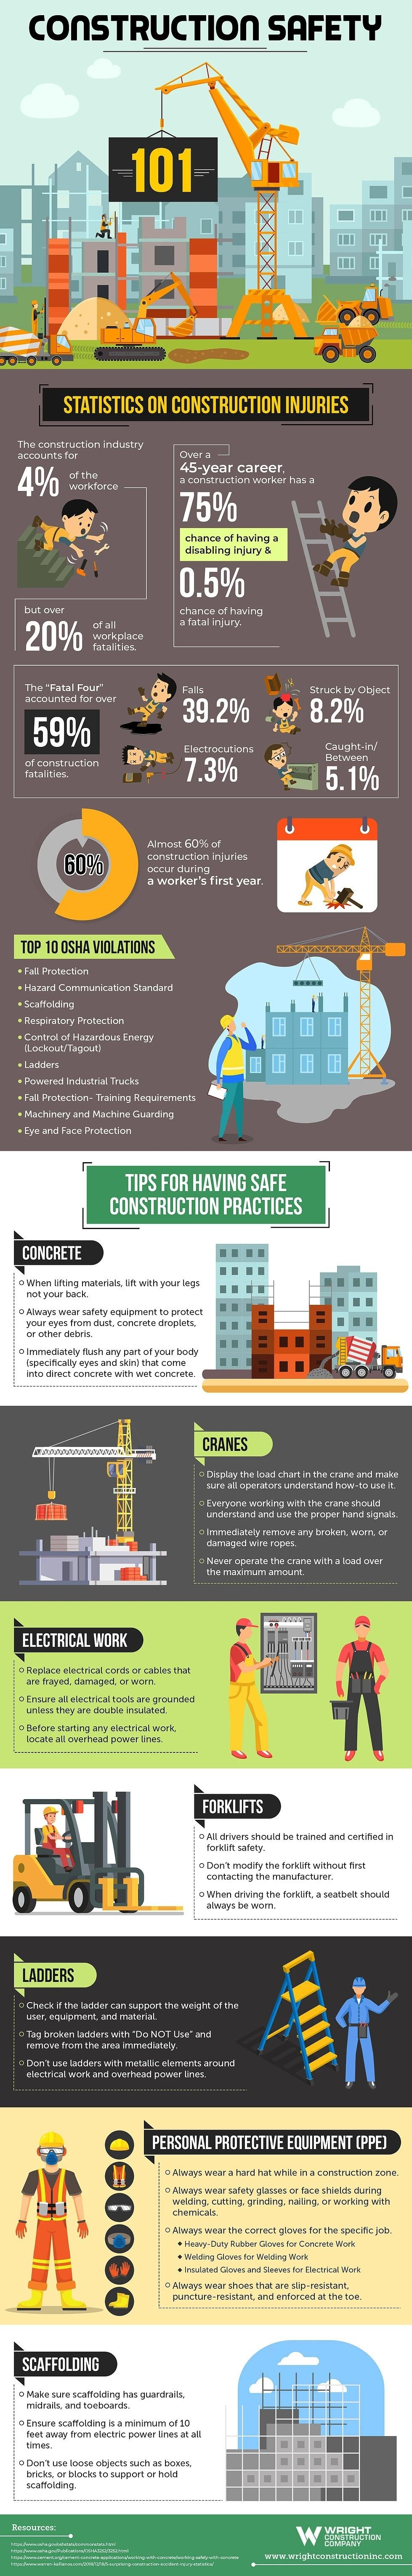 Construction safety 101 infographic construction safety